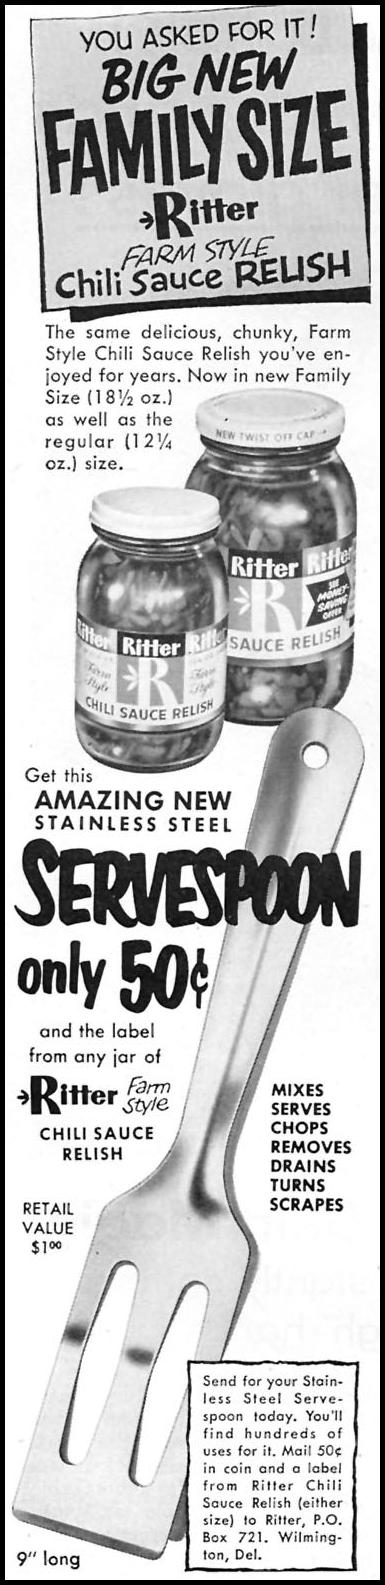 RITTER CHILI SAUCE RELISH FAMILY CIRCLE 02/01/1956 p. 6